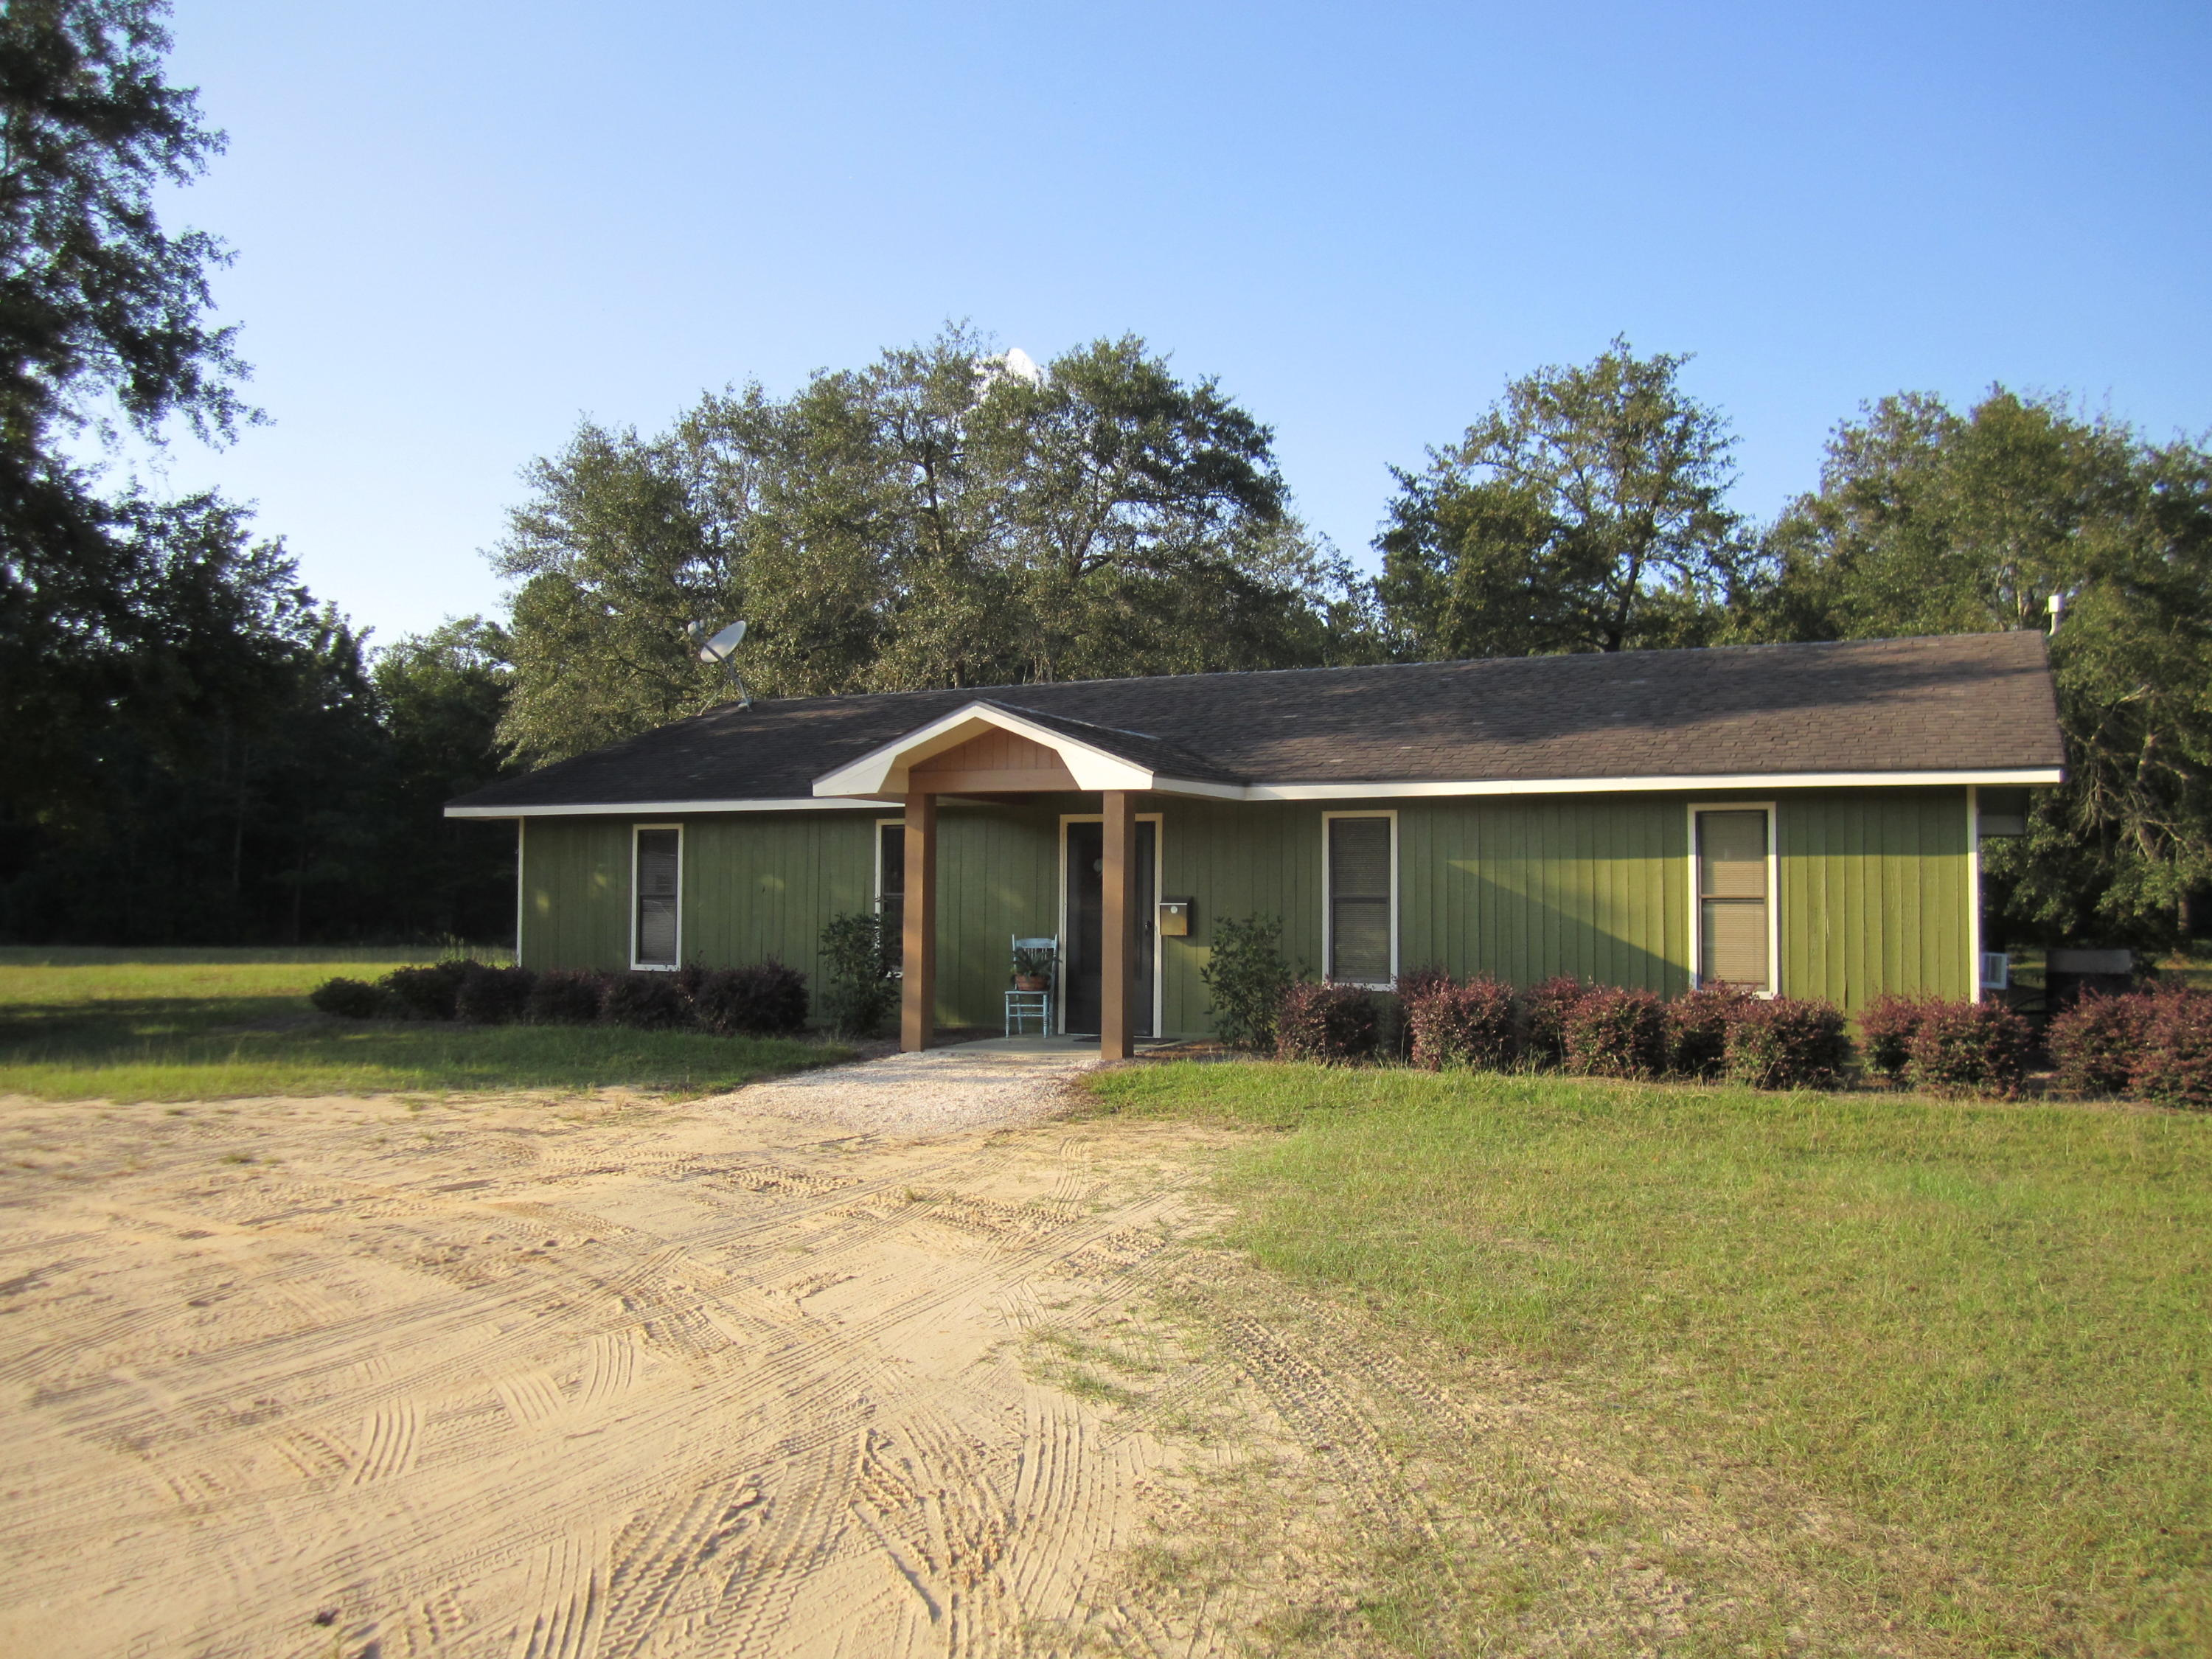 Photo of 2035 Wolfe Creek Rd, Walterboro, SC 29488